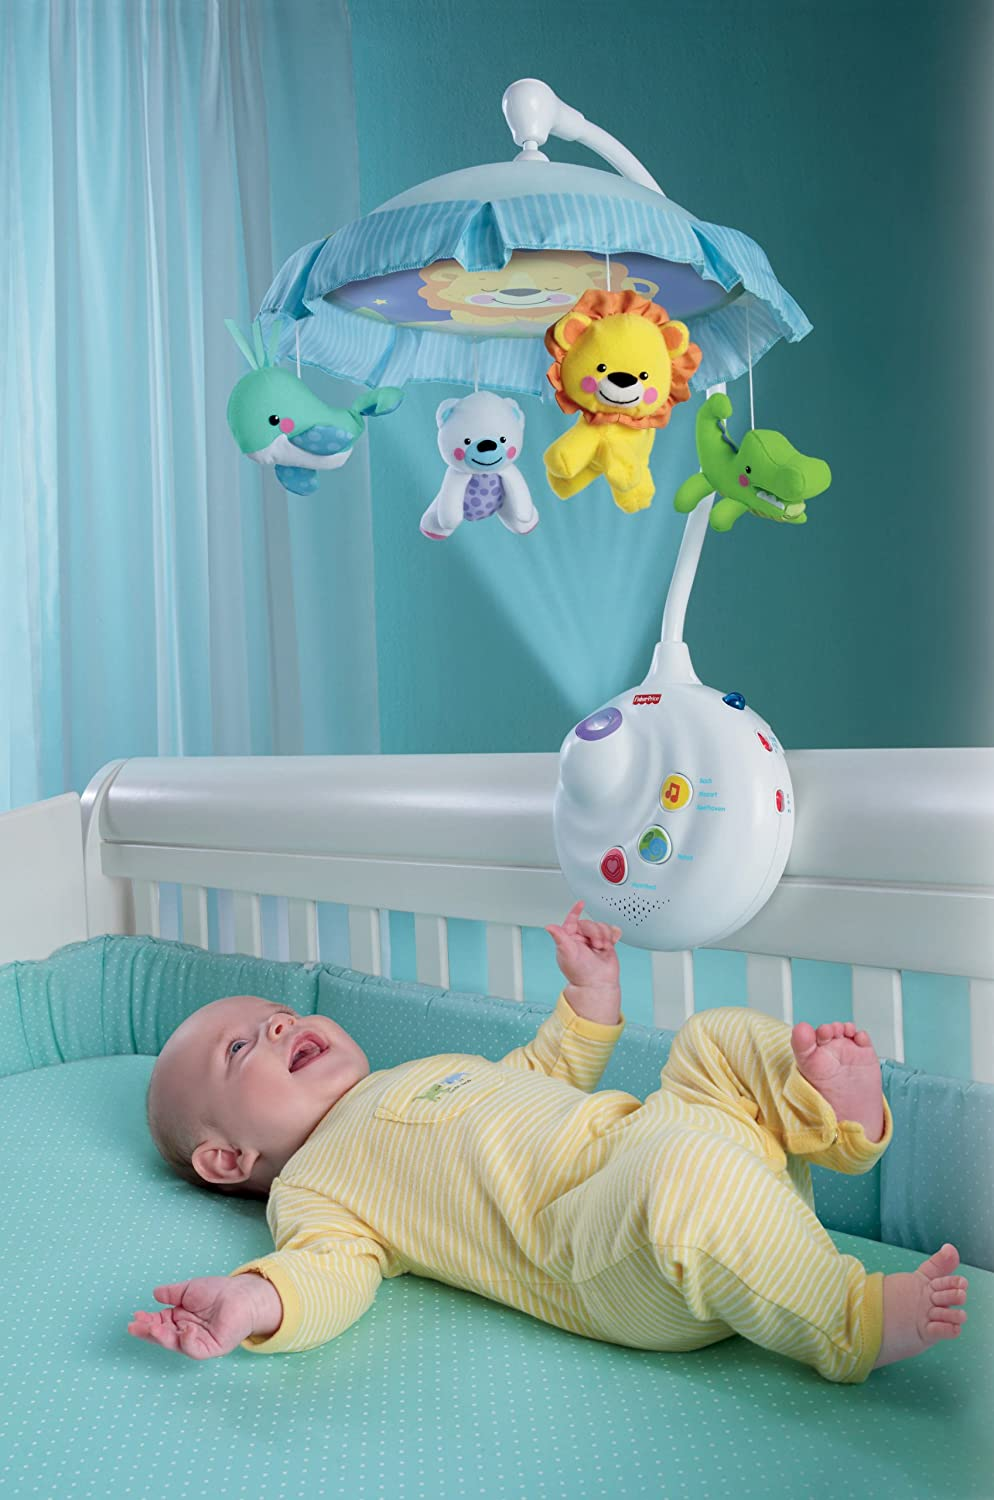 Mobile for baby crib - Amazon Com Fisher Price Precious Planet 2 In 1 Projection Mobile Crib Toys Baby